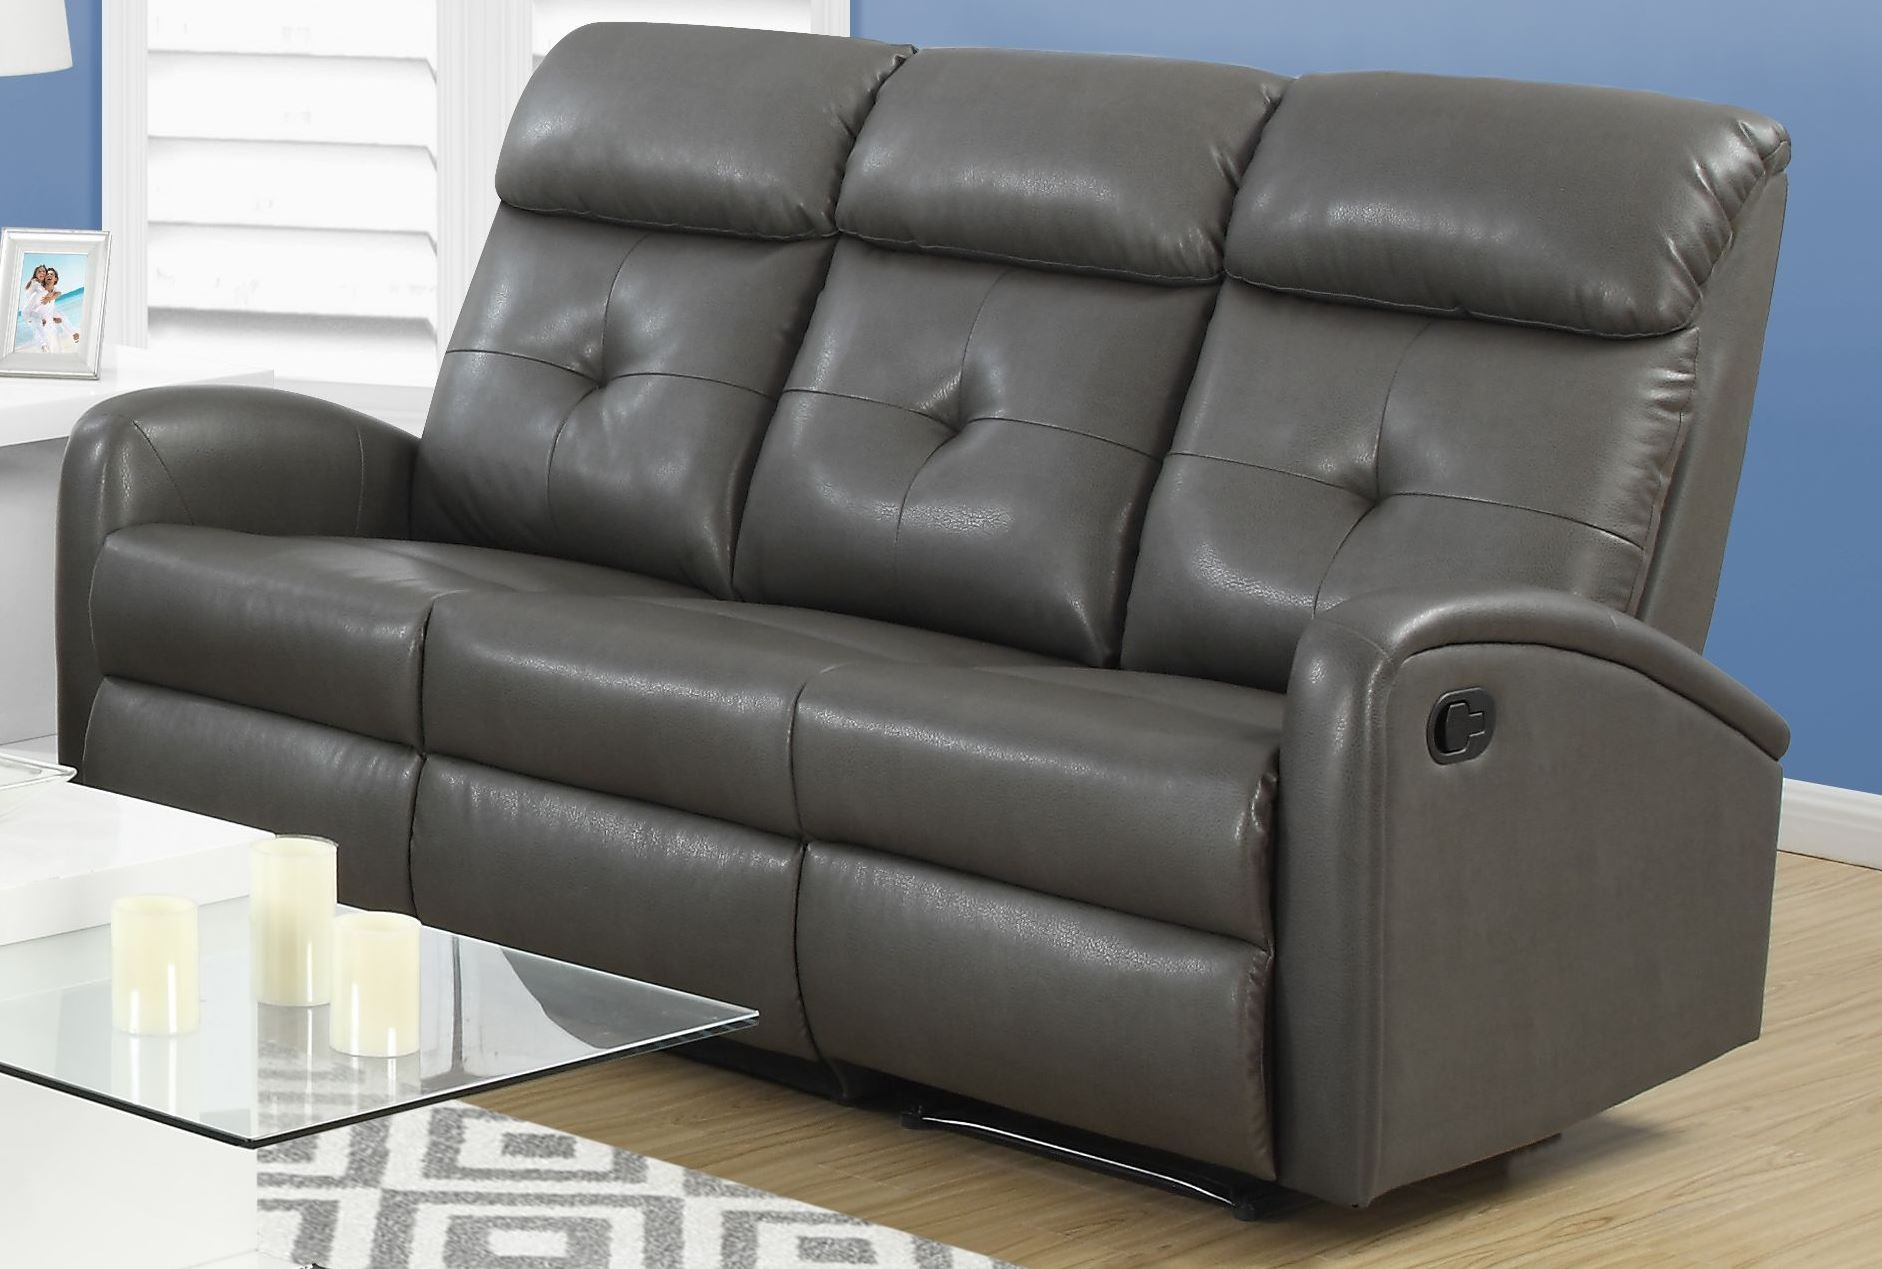 88gy 3 Charcoal Gray Bonded Leather Reclining Sofa From